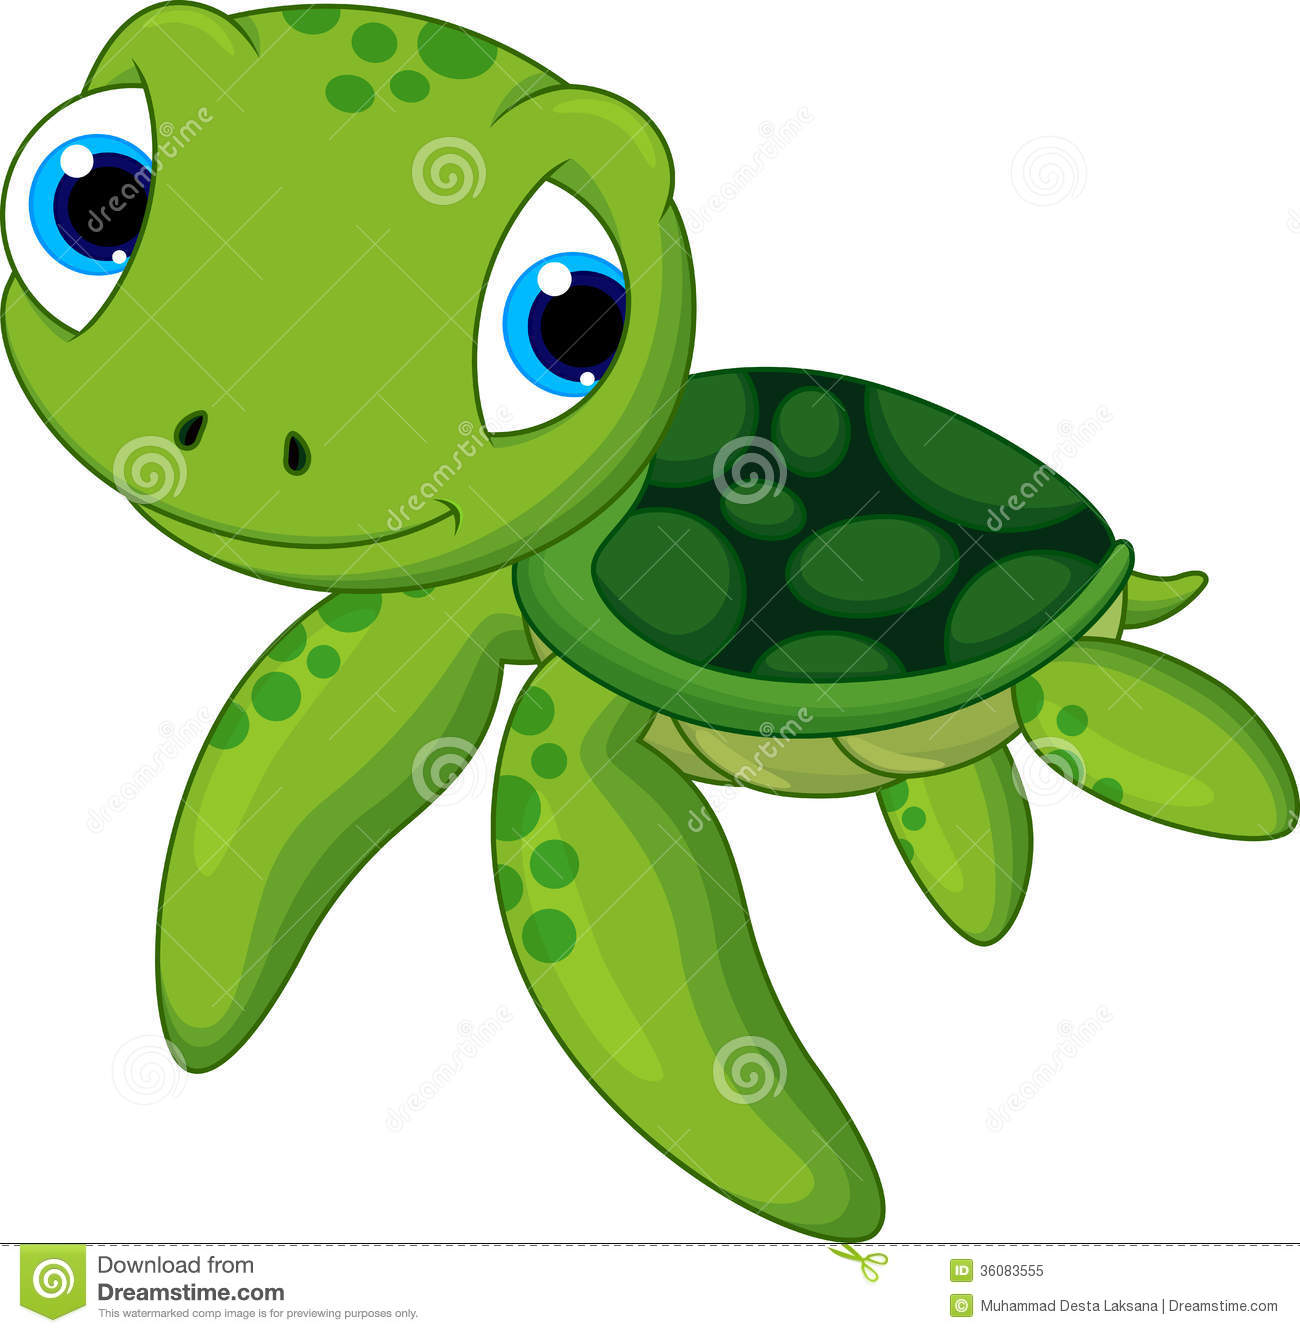 Baby Turtle Clipart - Clipart Kid